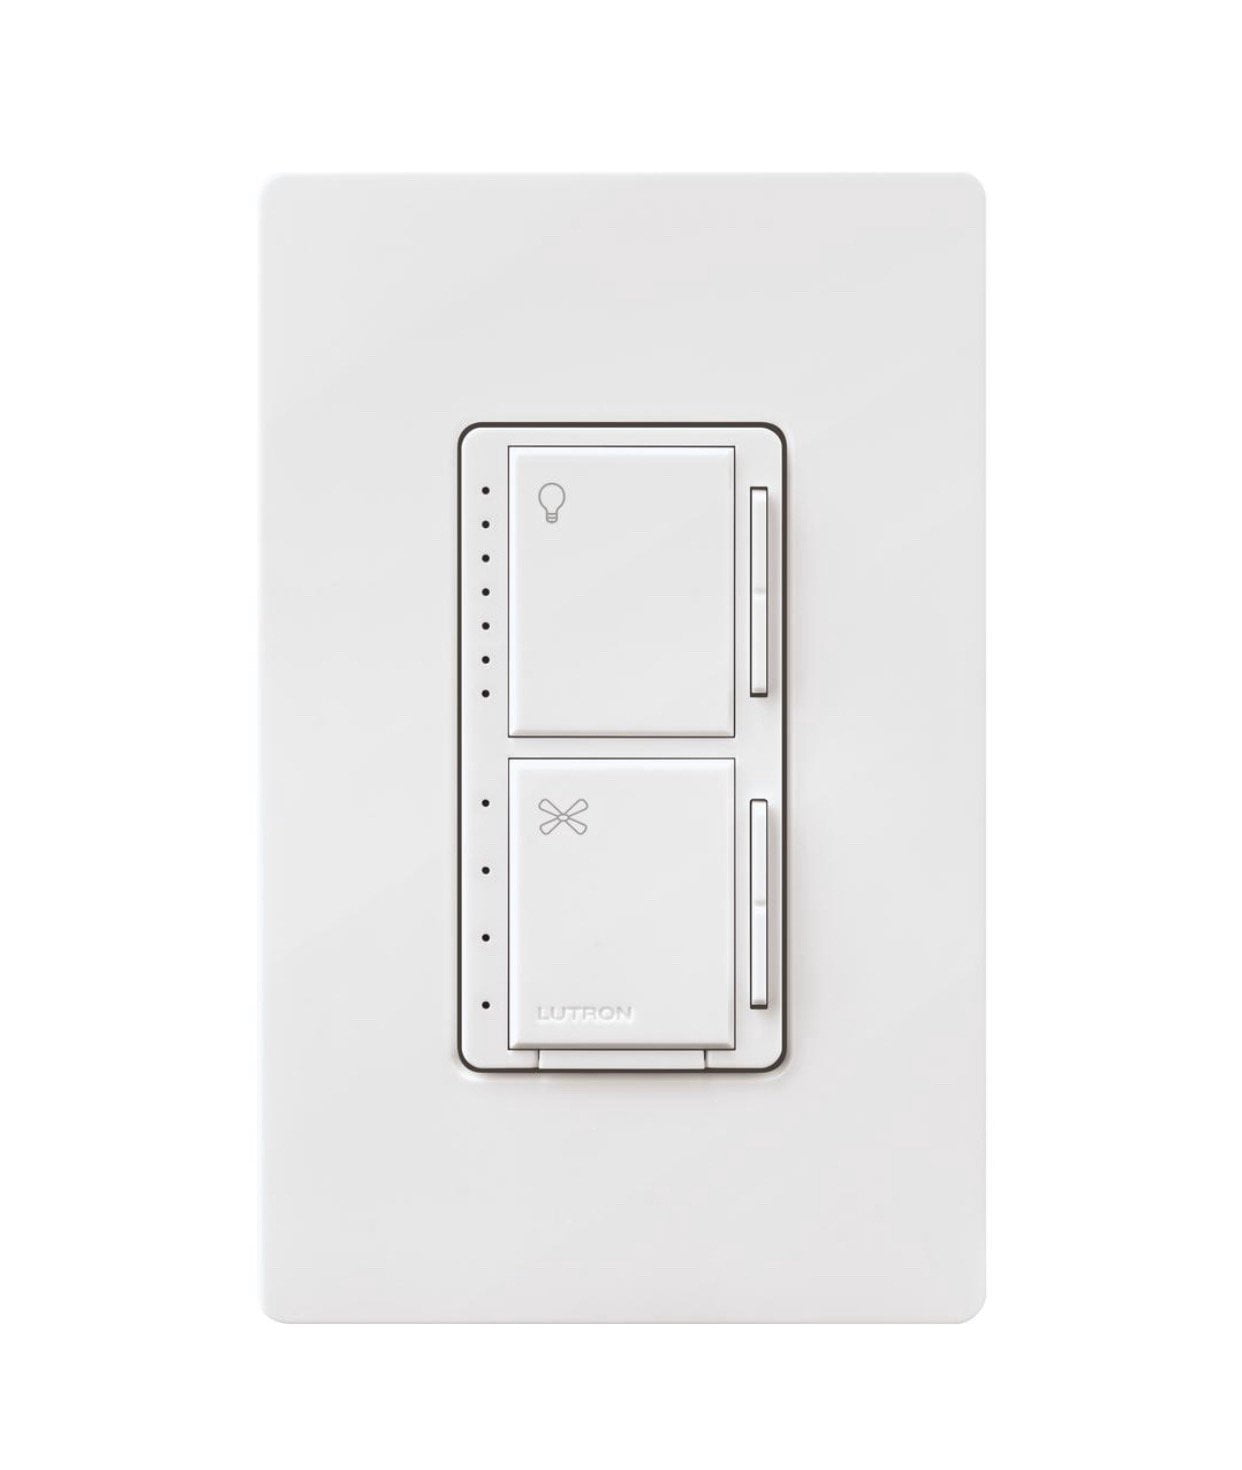 Why doesn't anyone do a Dual Maestro dinner in one band as a smart dual dimmer?